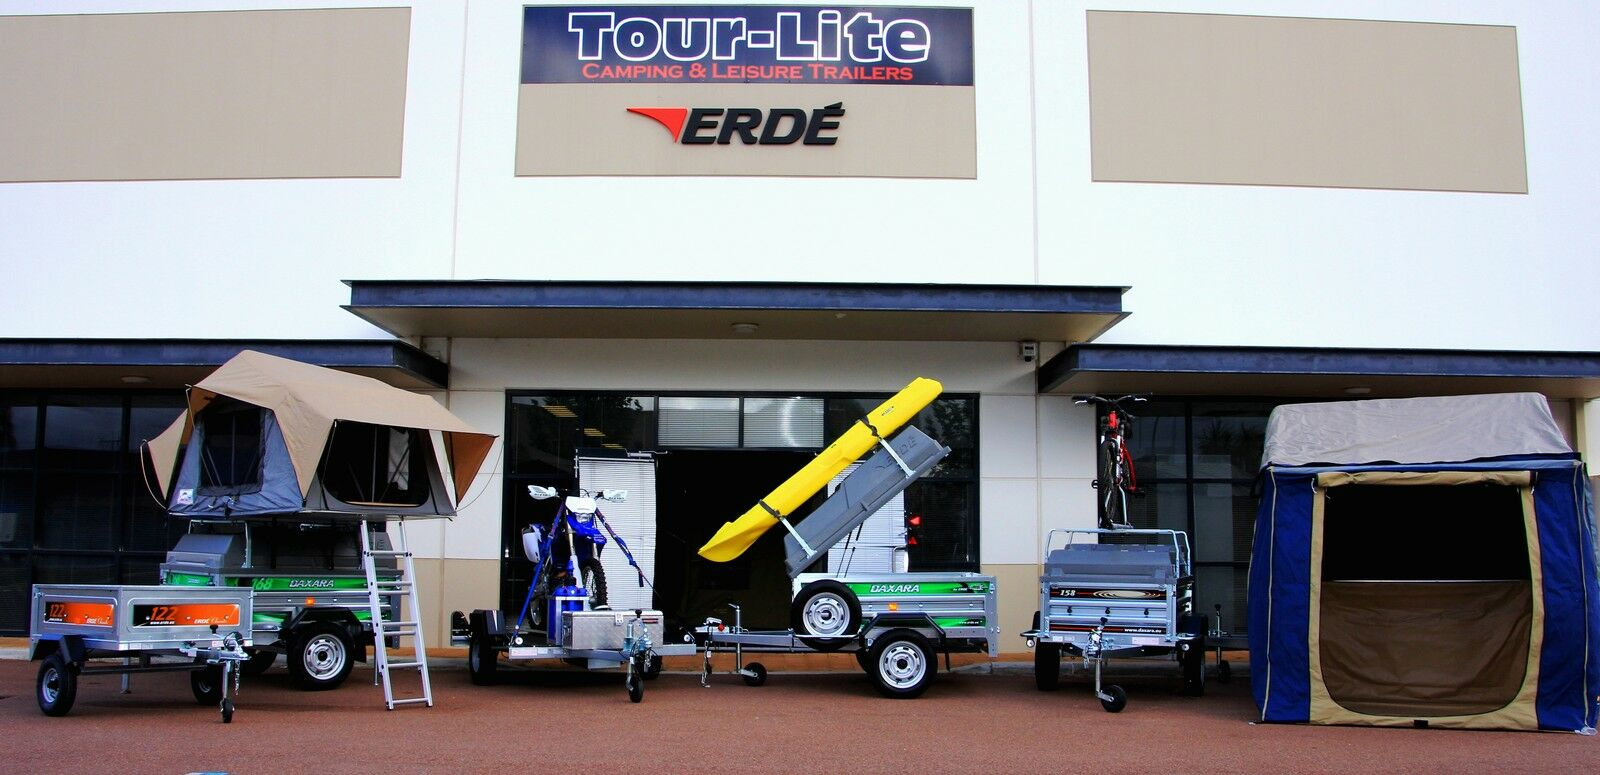 Tourlite Trailers